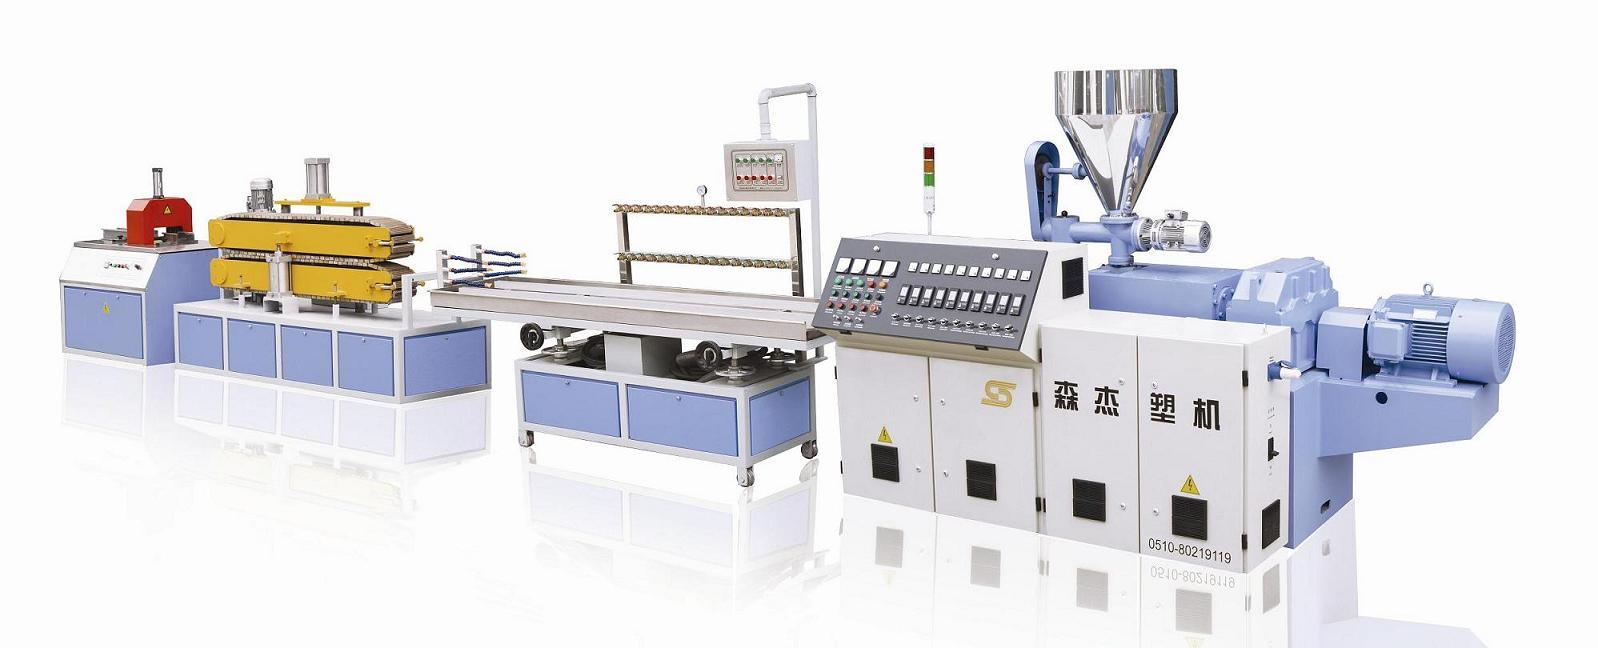 Production line of pvc profile yf200